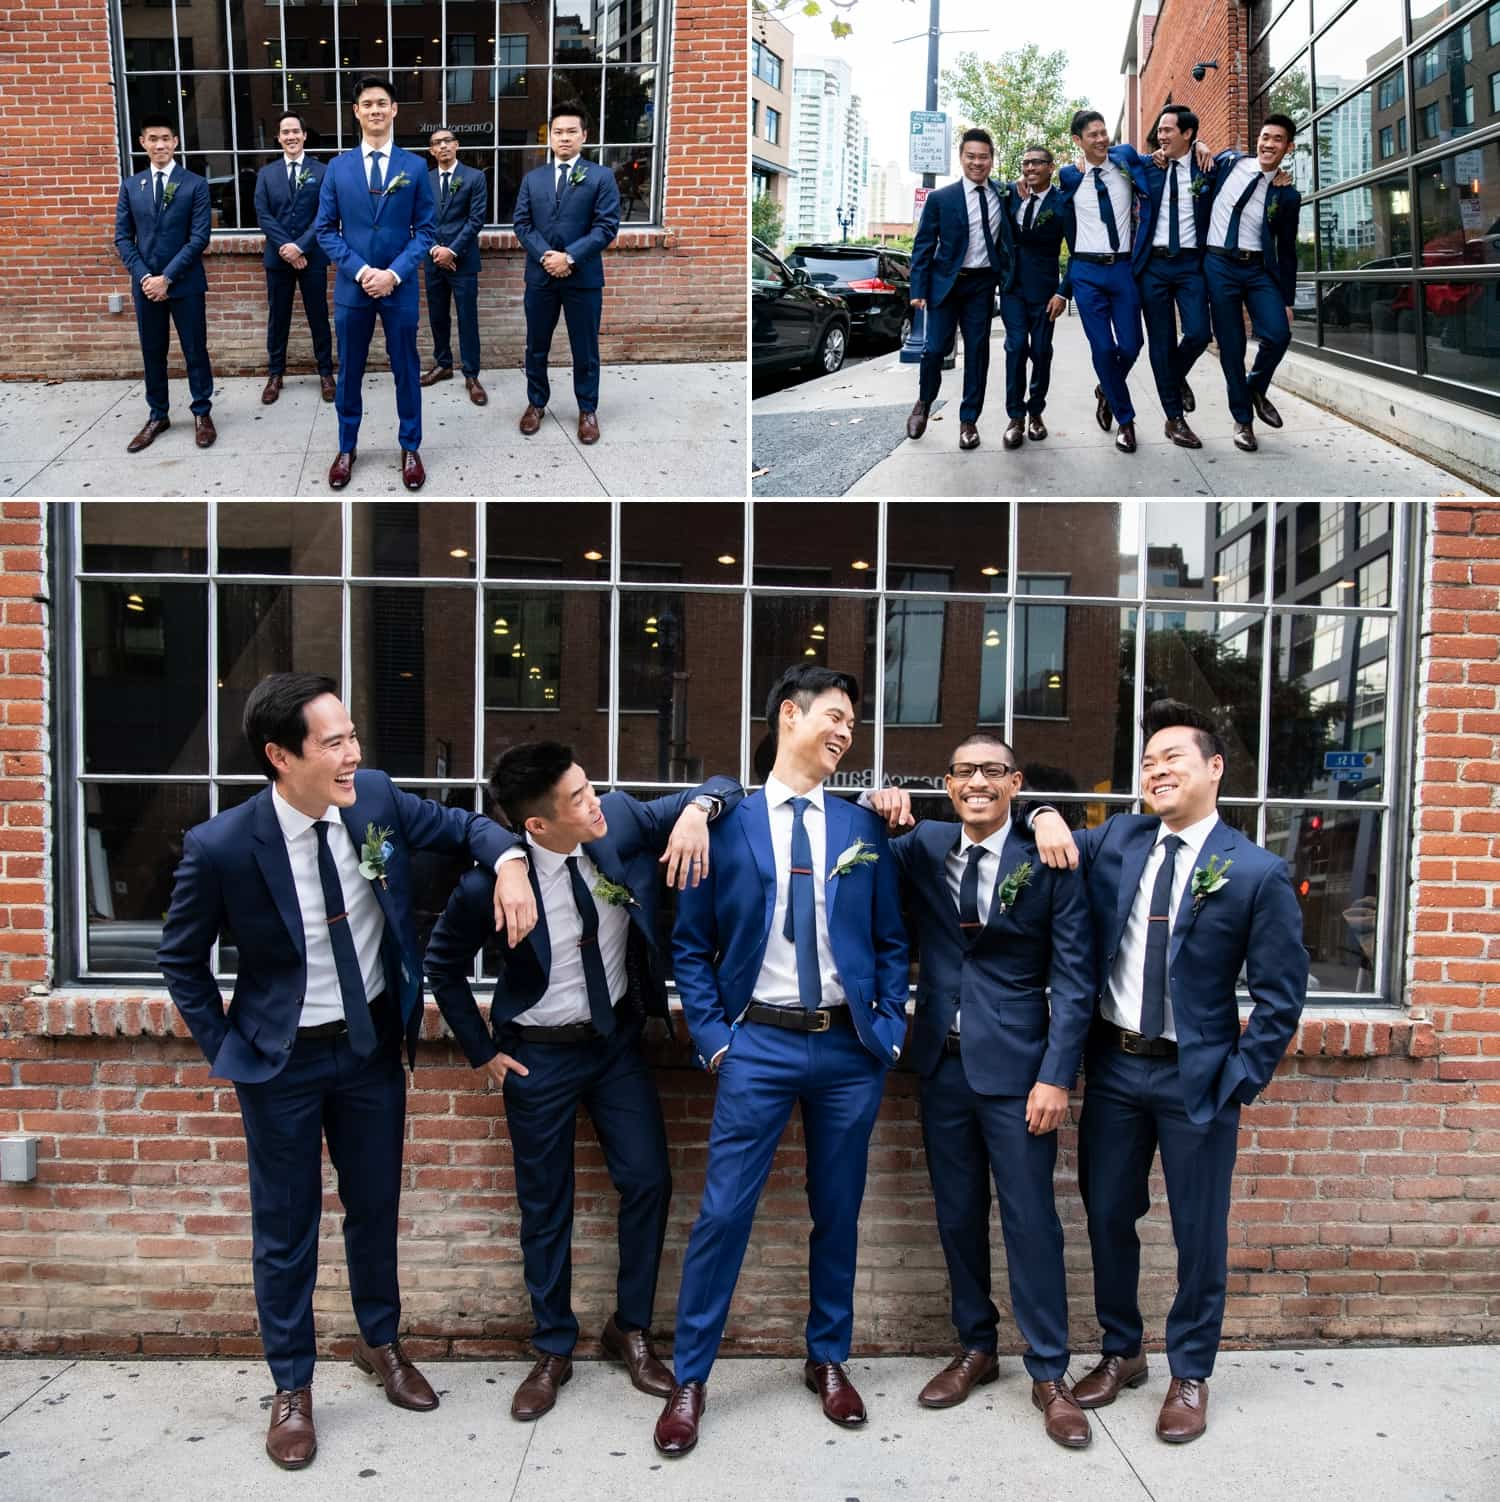 Groom with his groomsmen in downtown San Diego.